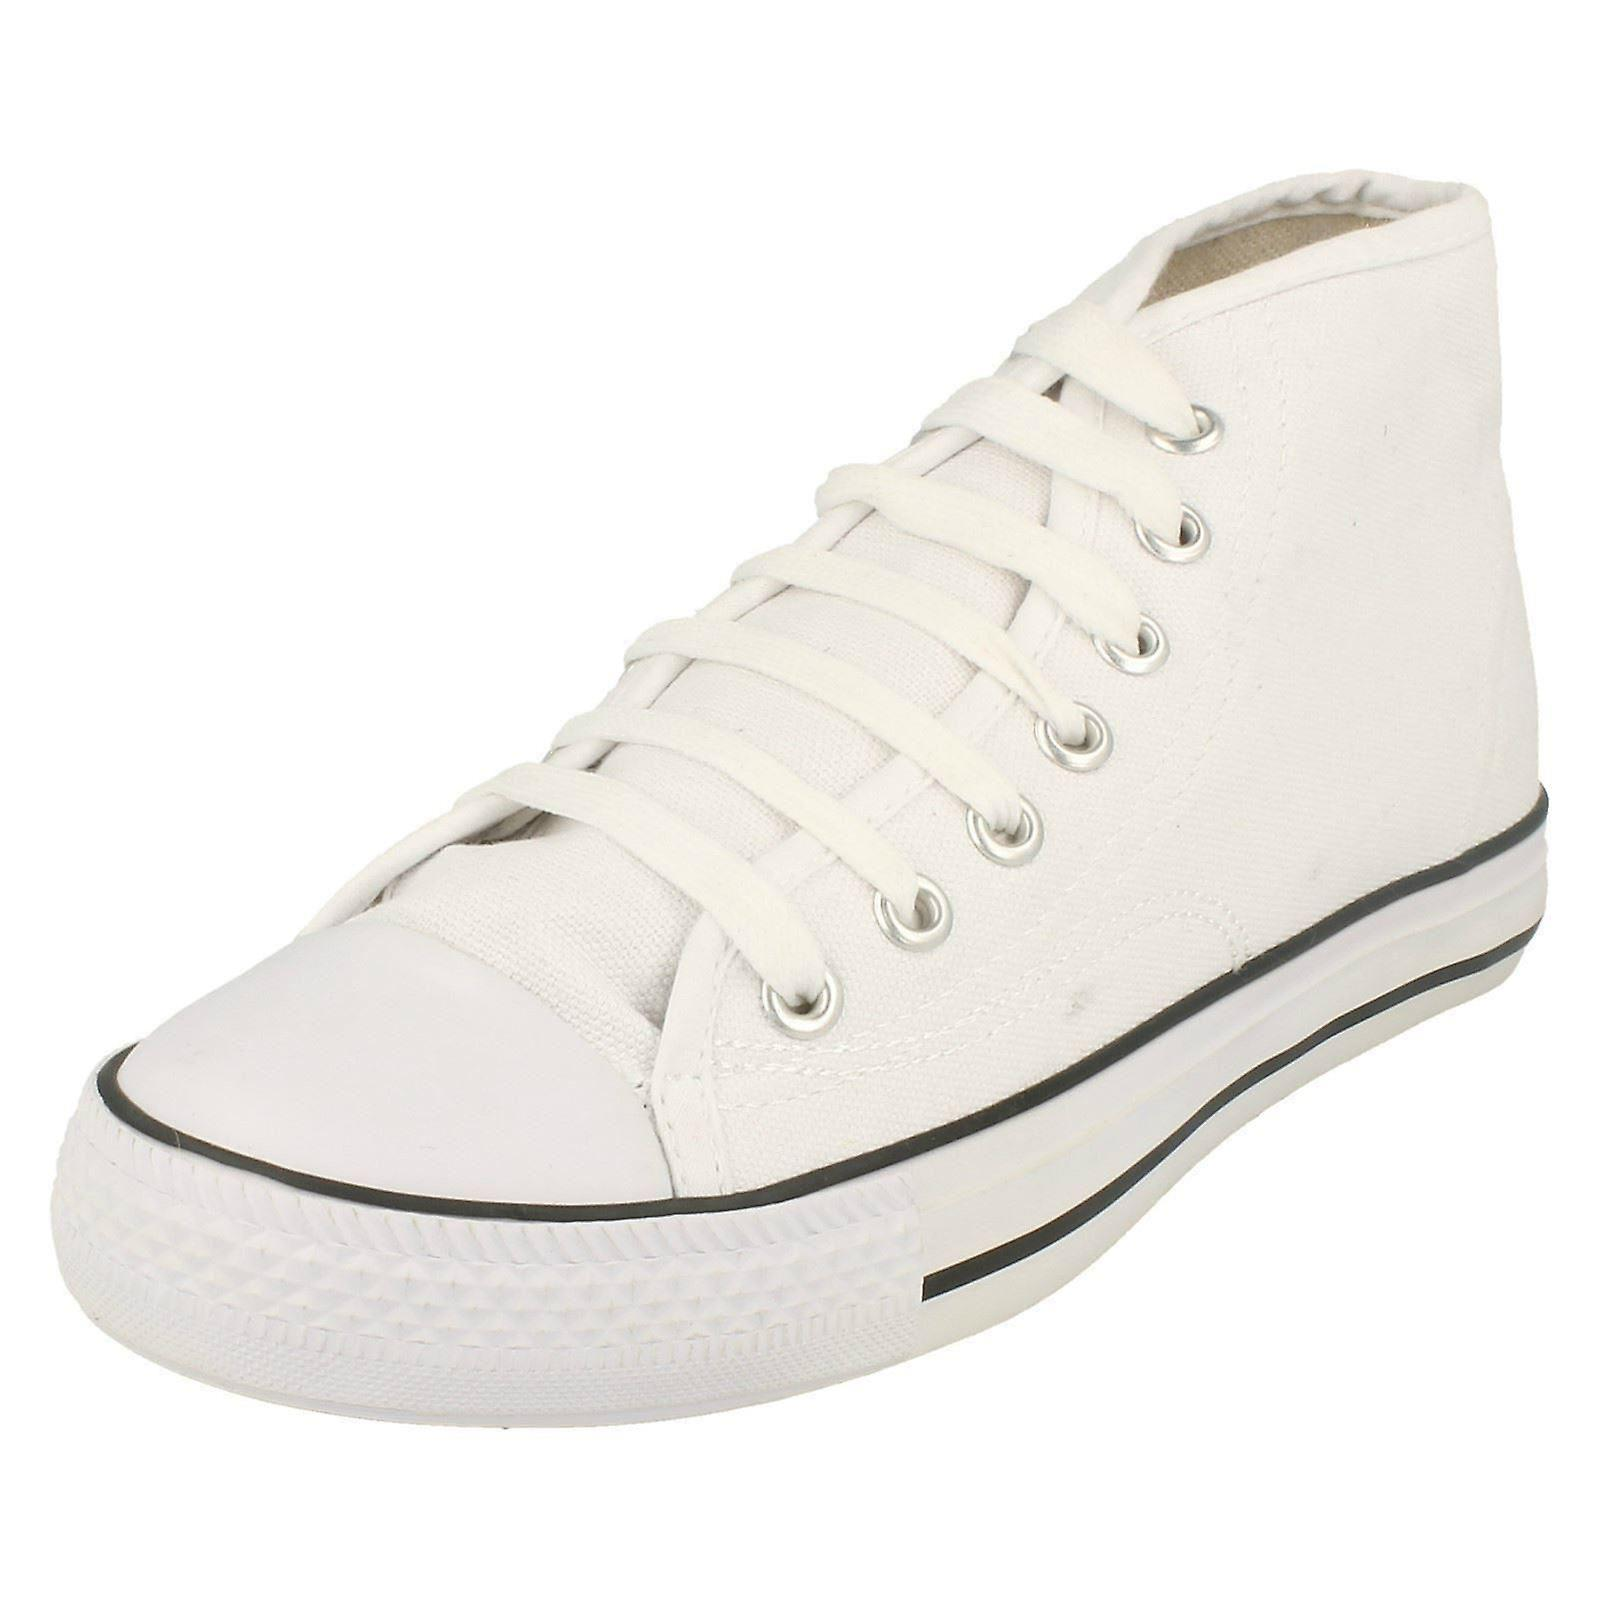 Ladies Spot On Hi-Rise Lace Up Canvas Pumps X0002